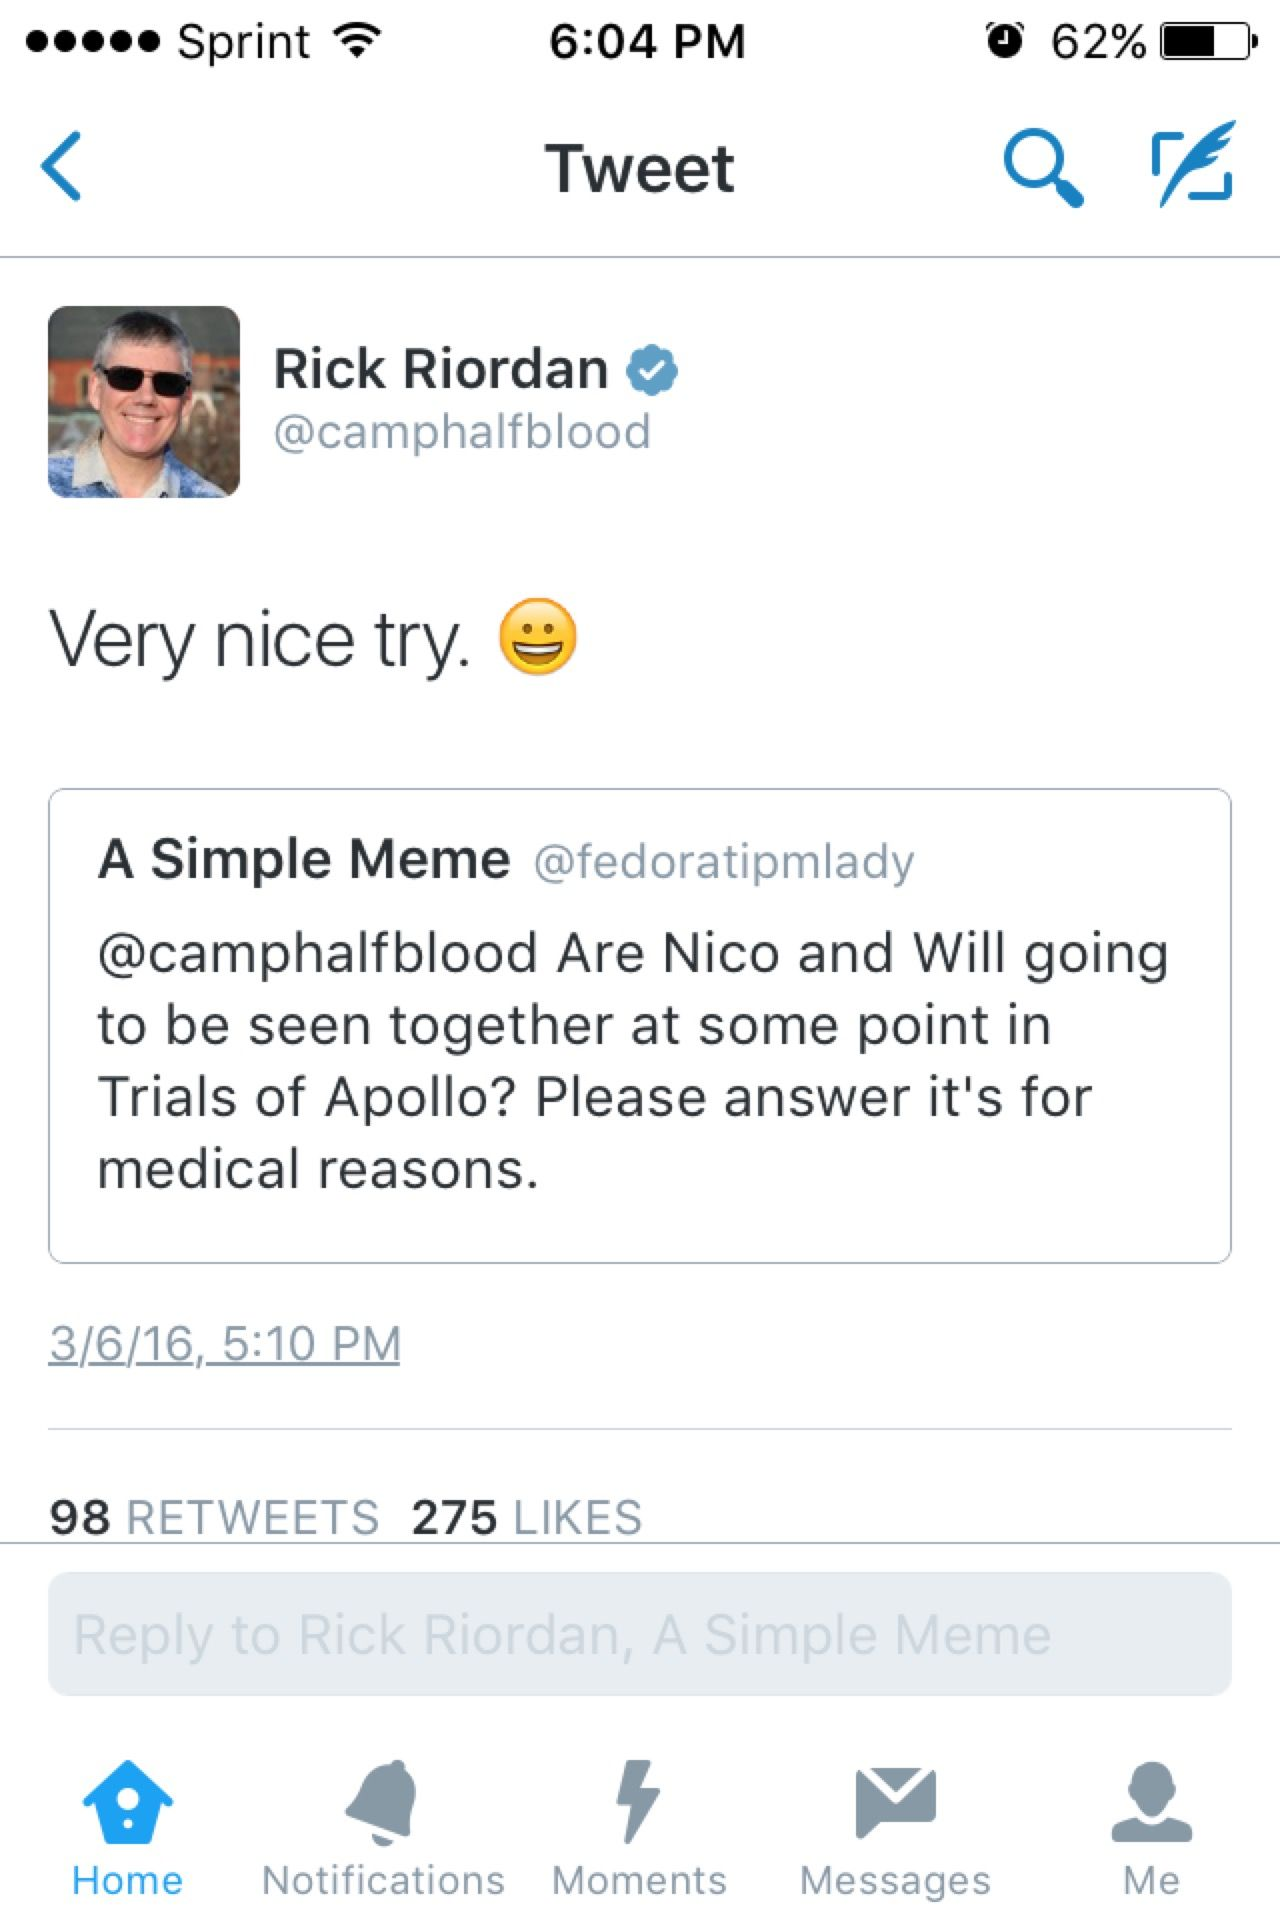 It's for medical reasons trials of Apollo